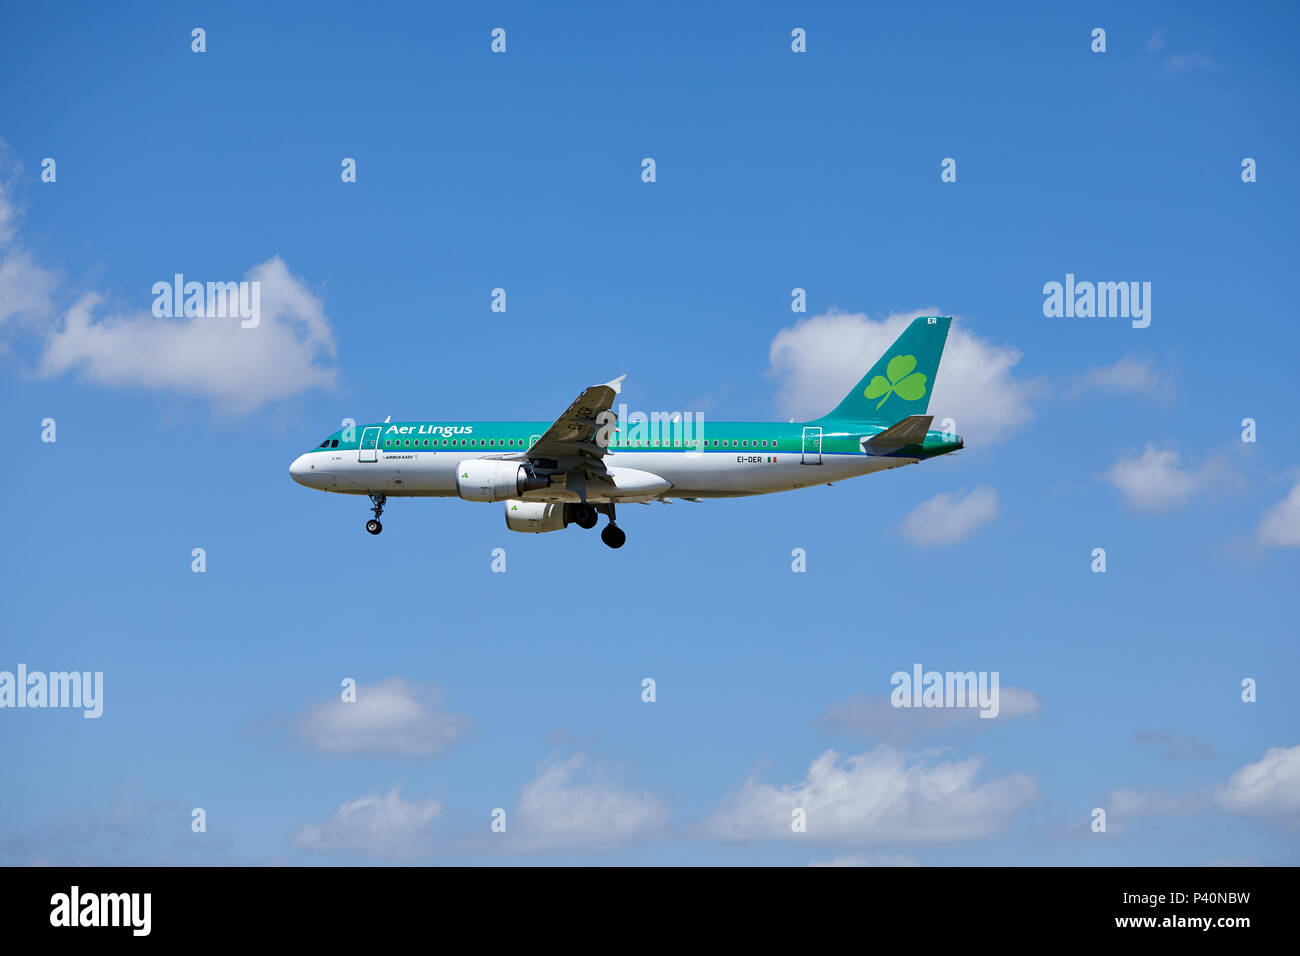 An Air Lingus Airbus A320-214 aircraft, registration number EI-DER, nickname St Mel, approaching a landing. - Stock Image